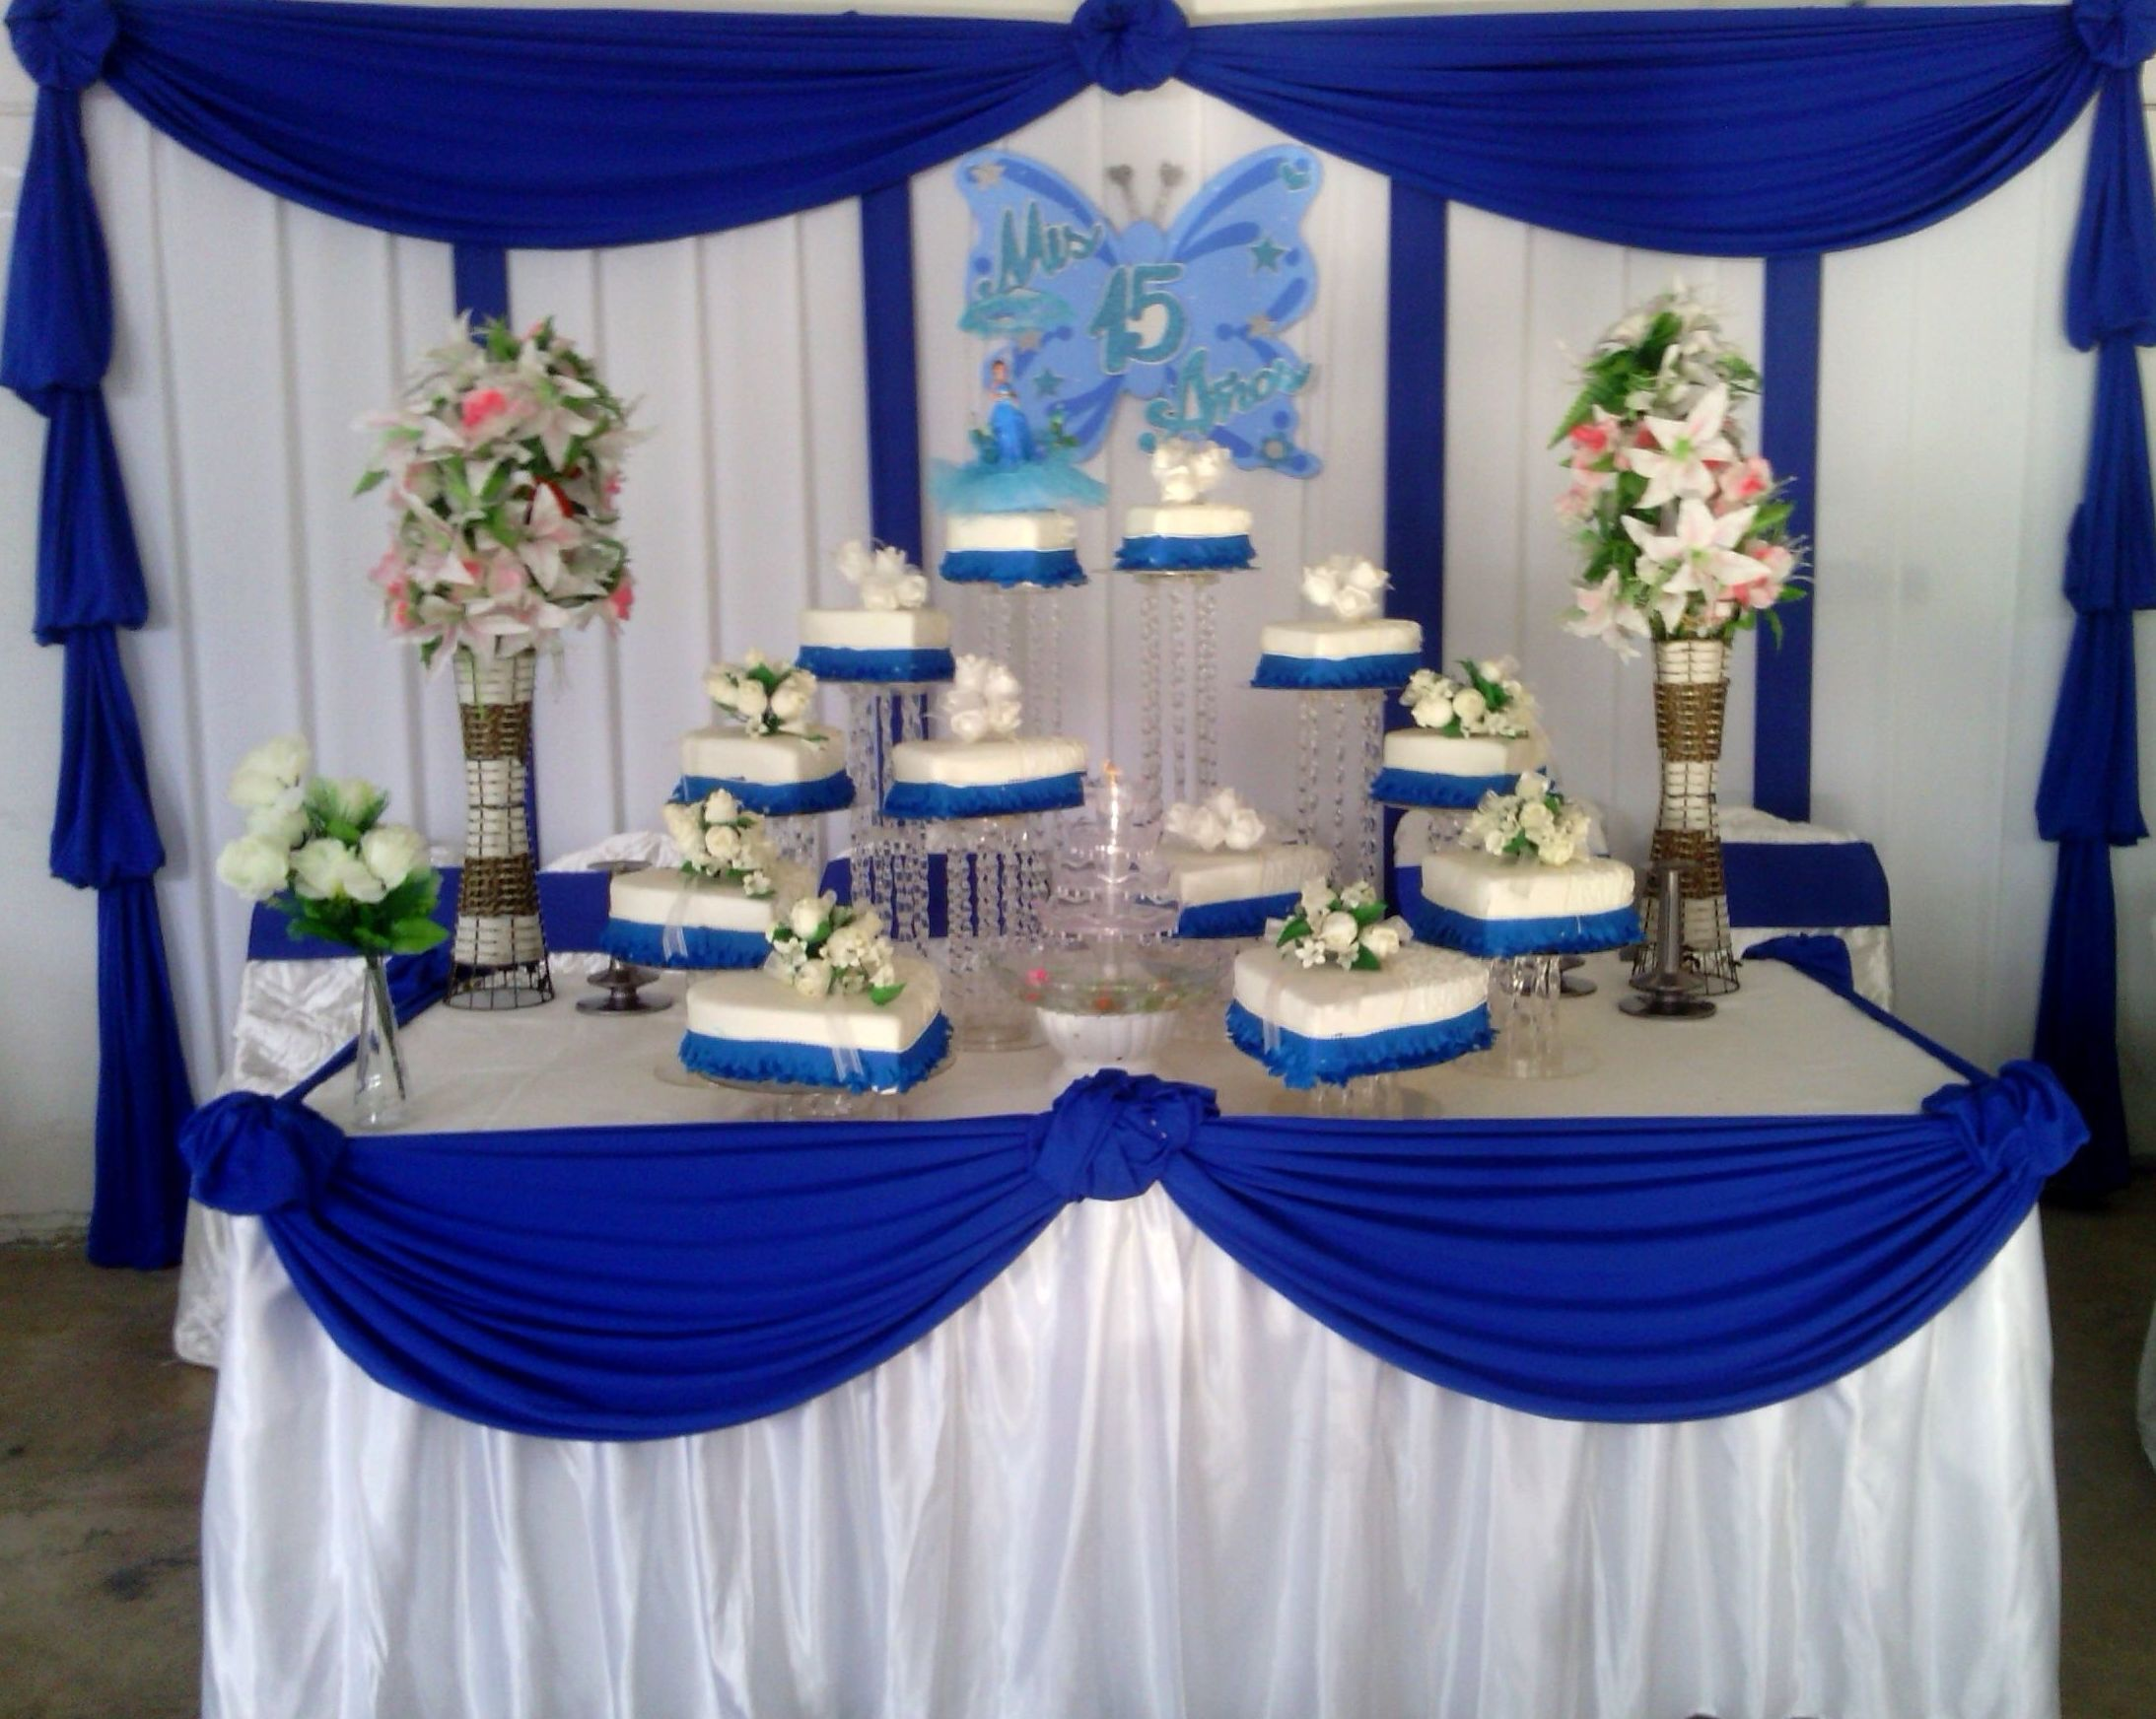 Decoraciones en color azul especial para quince a os for Ver decoraciones